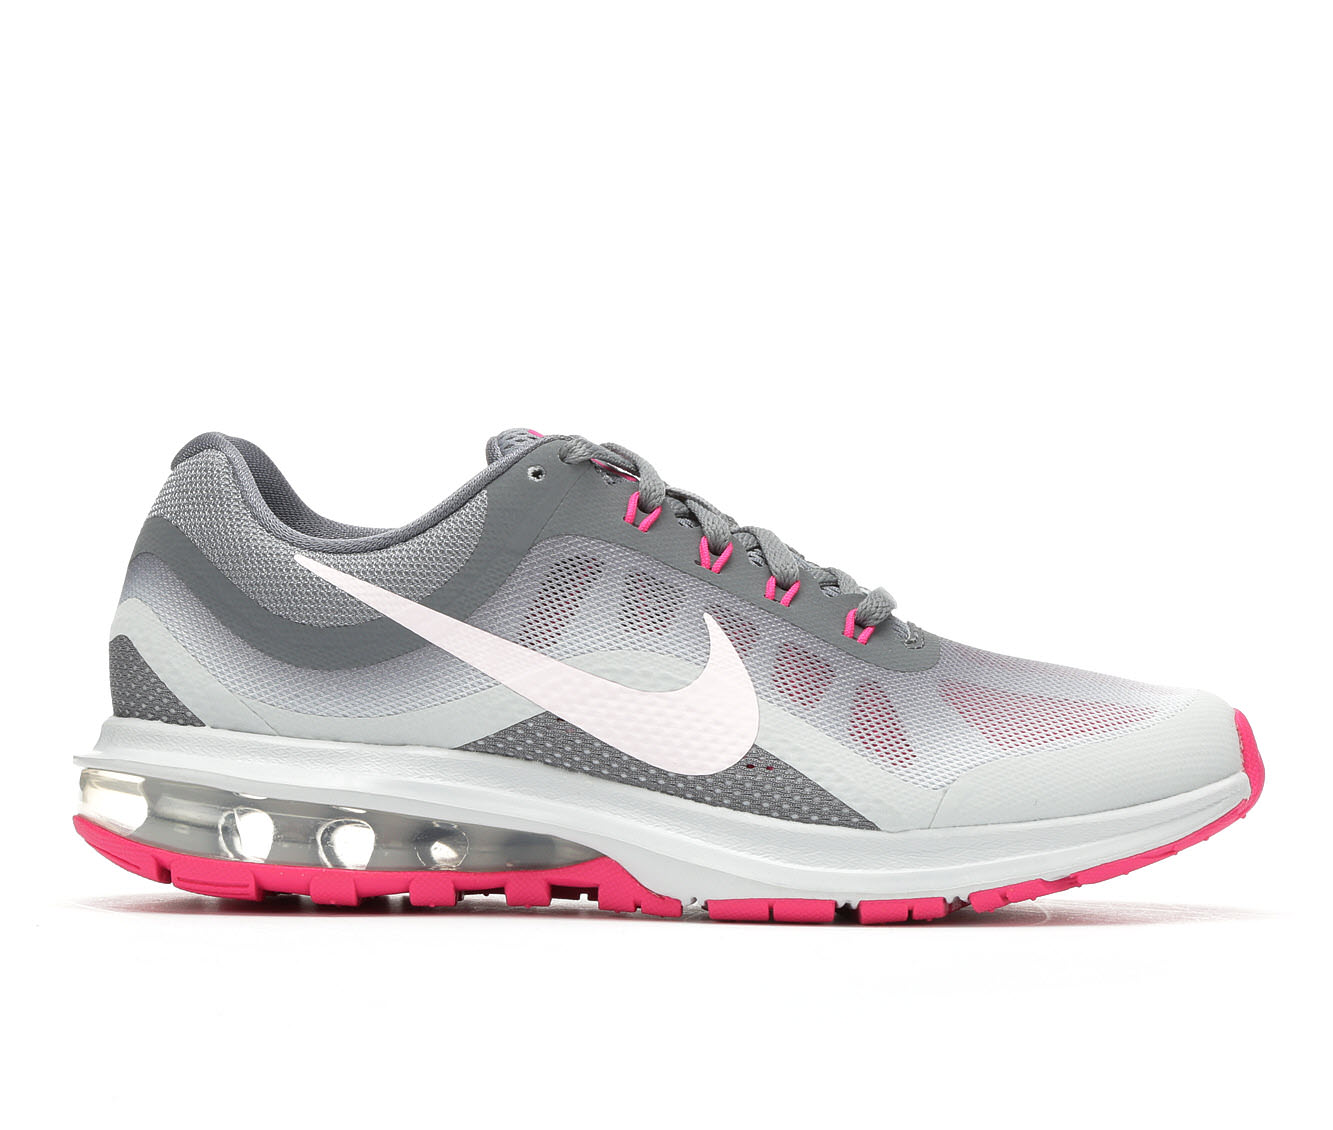 Women's Nike Air Max Dynasty 2 Running Shoes (Grey - Size 11) 1689396